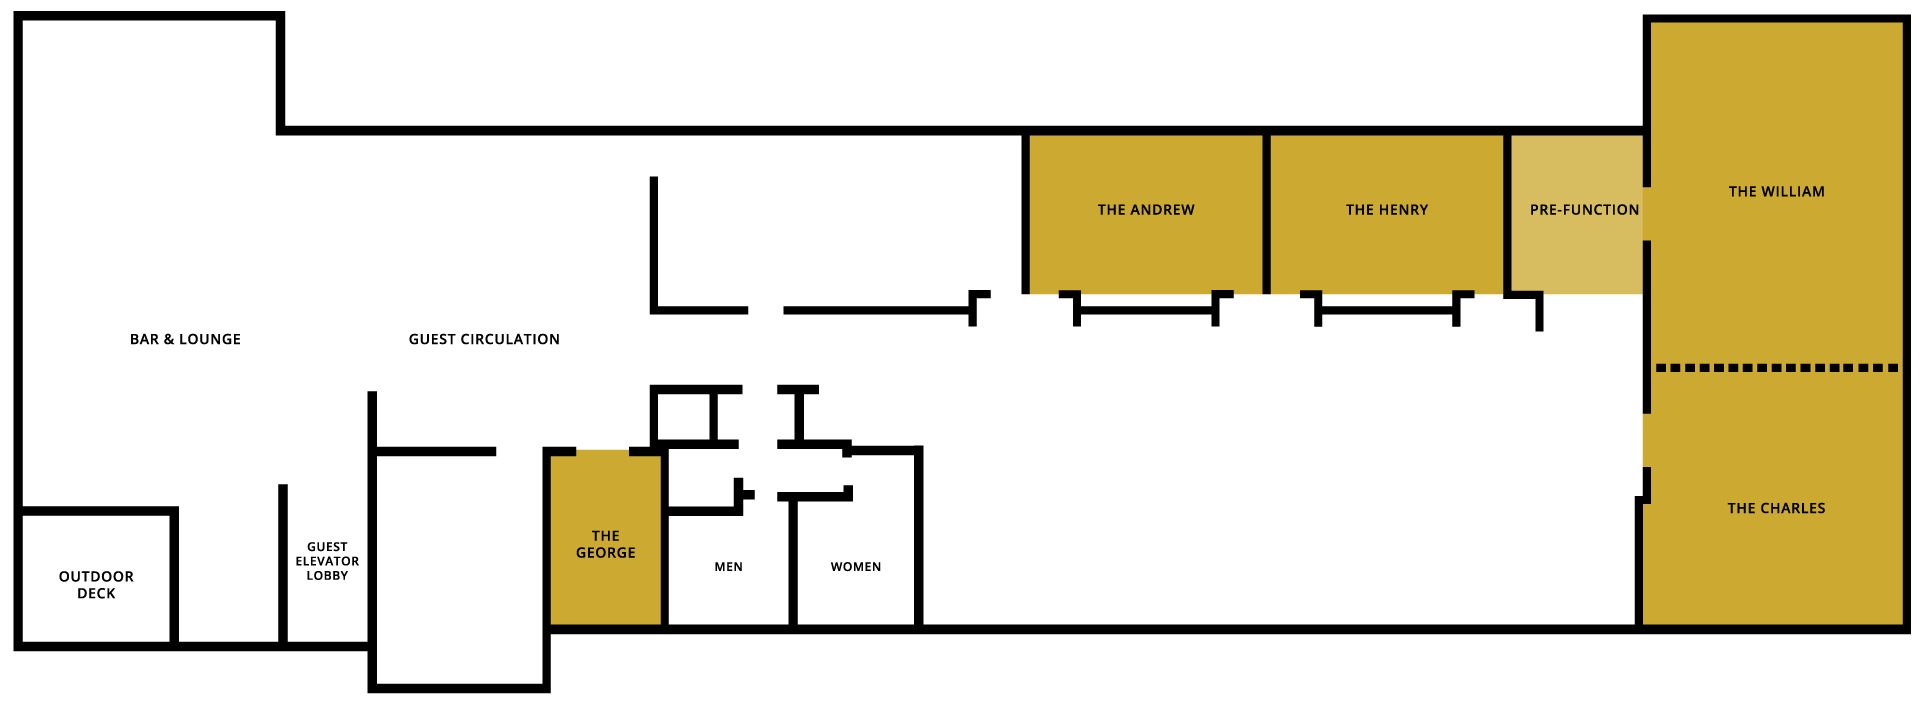 space diagram lucas ignition barrel wiring meeting in pittsburgh modern event the oaklander capacity chart 2 1 png